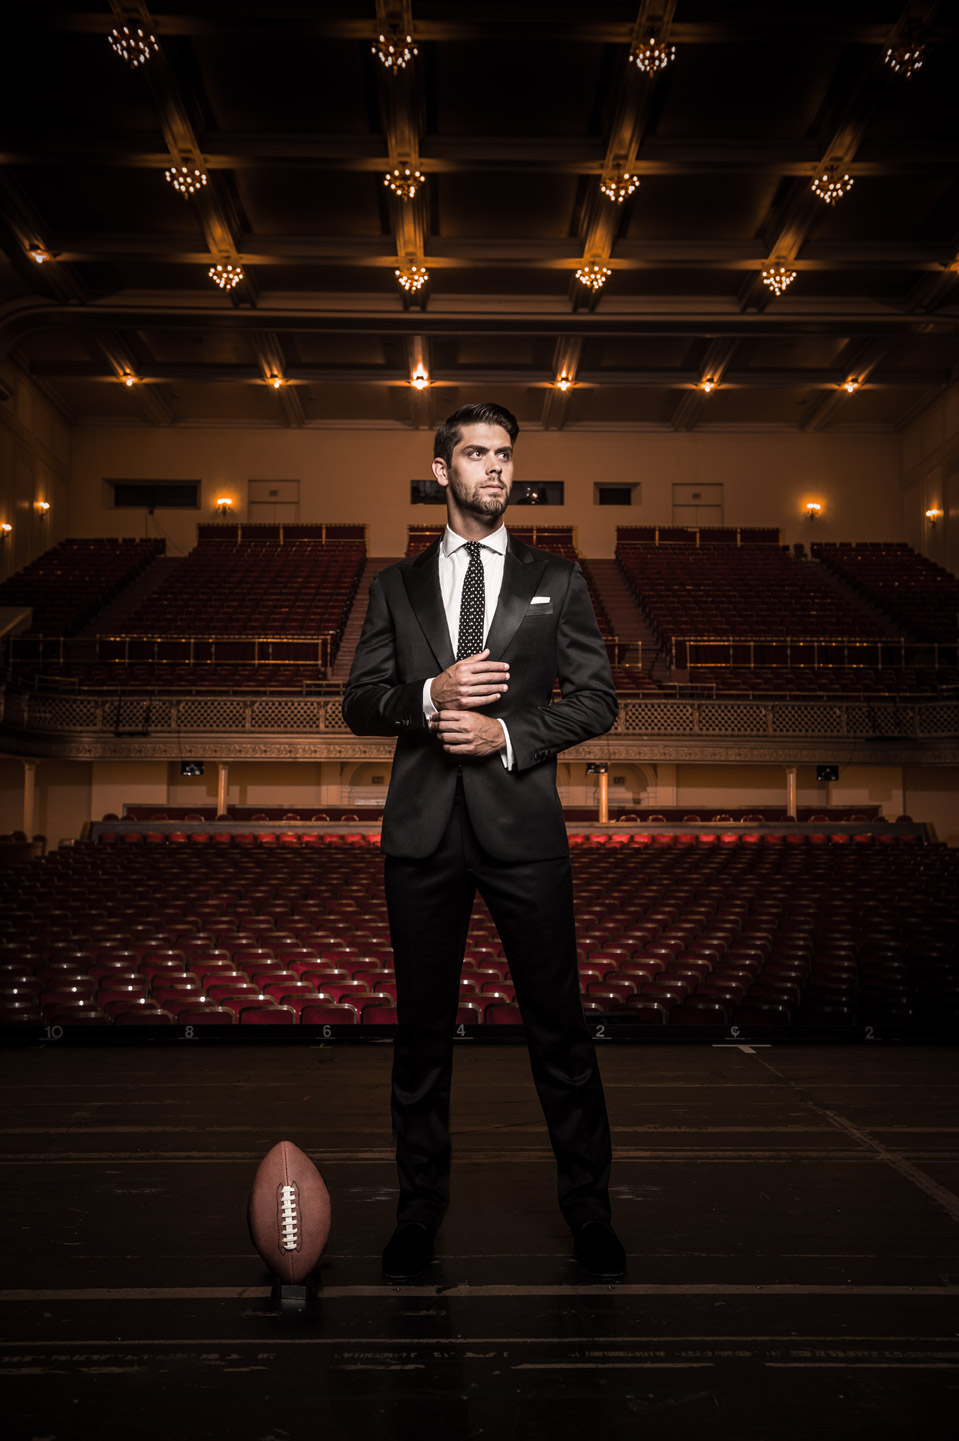 Baltimore Ravens kicker Justin Tucker standing on stage at the Lyric Opera House